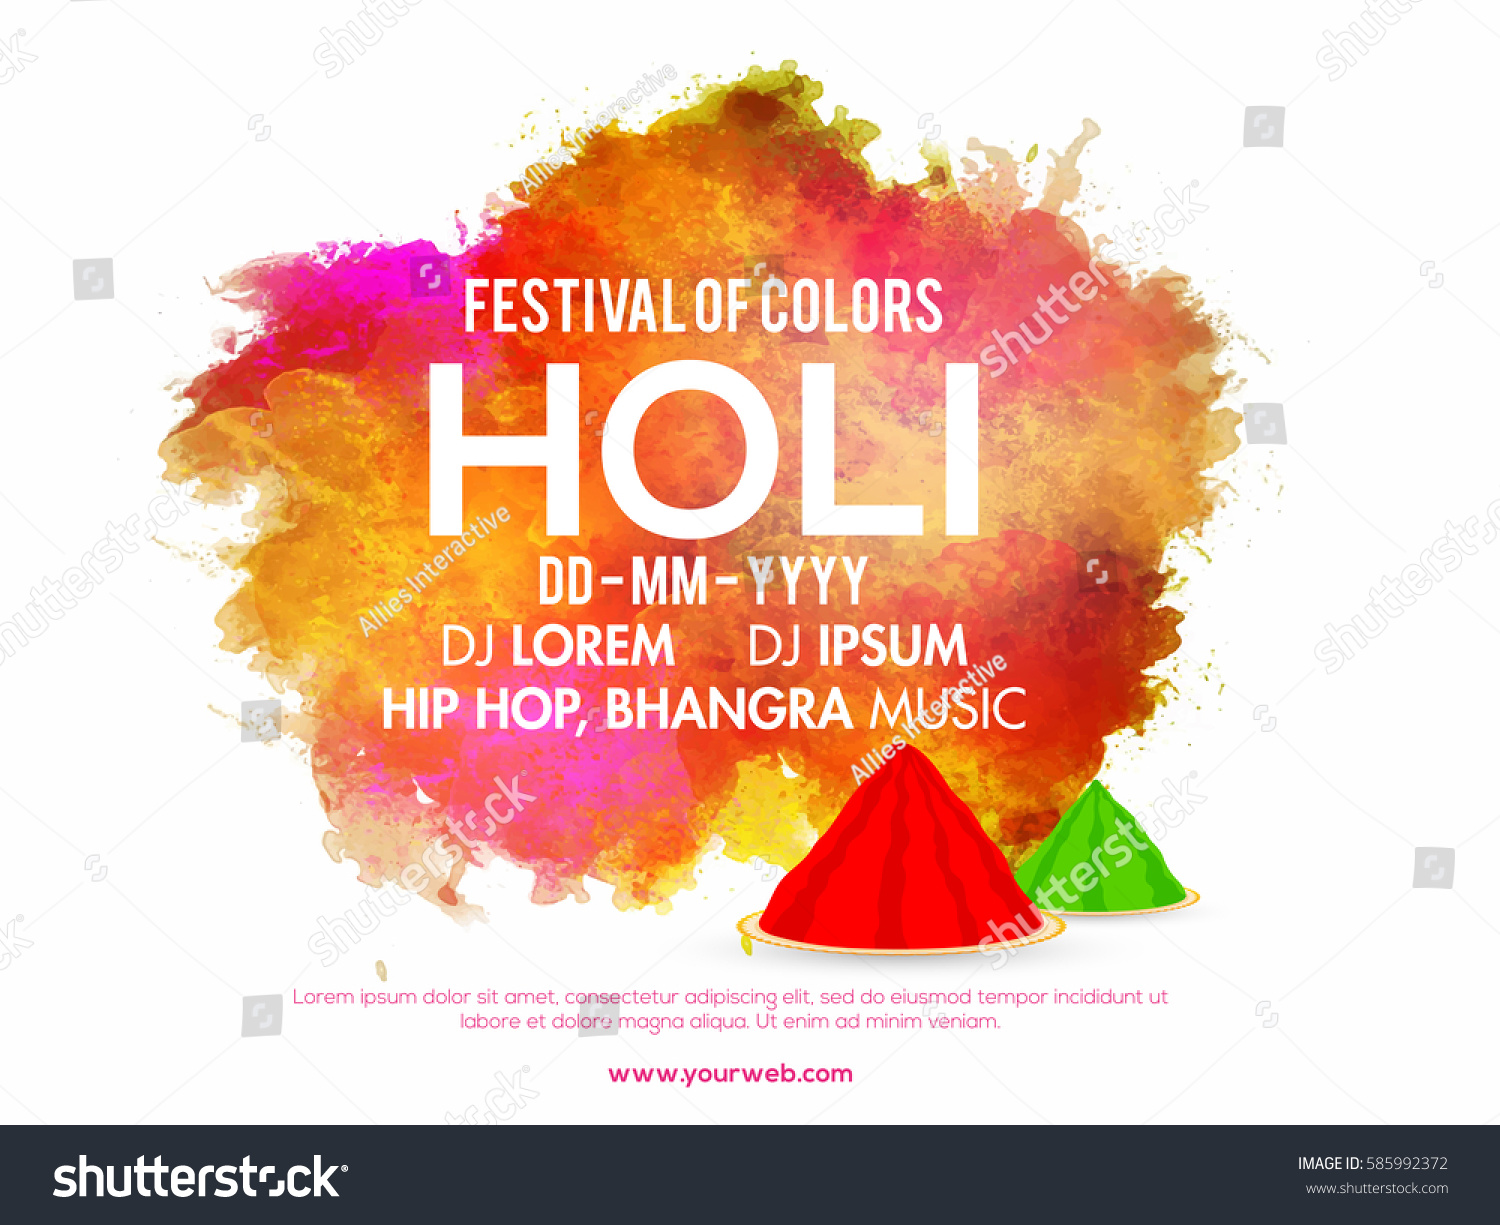 D d poster design - Abstract Colorful Splash Decorated Banner Poster Design For Indian Festival Of Colors Holi Party